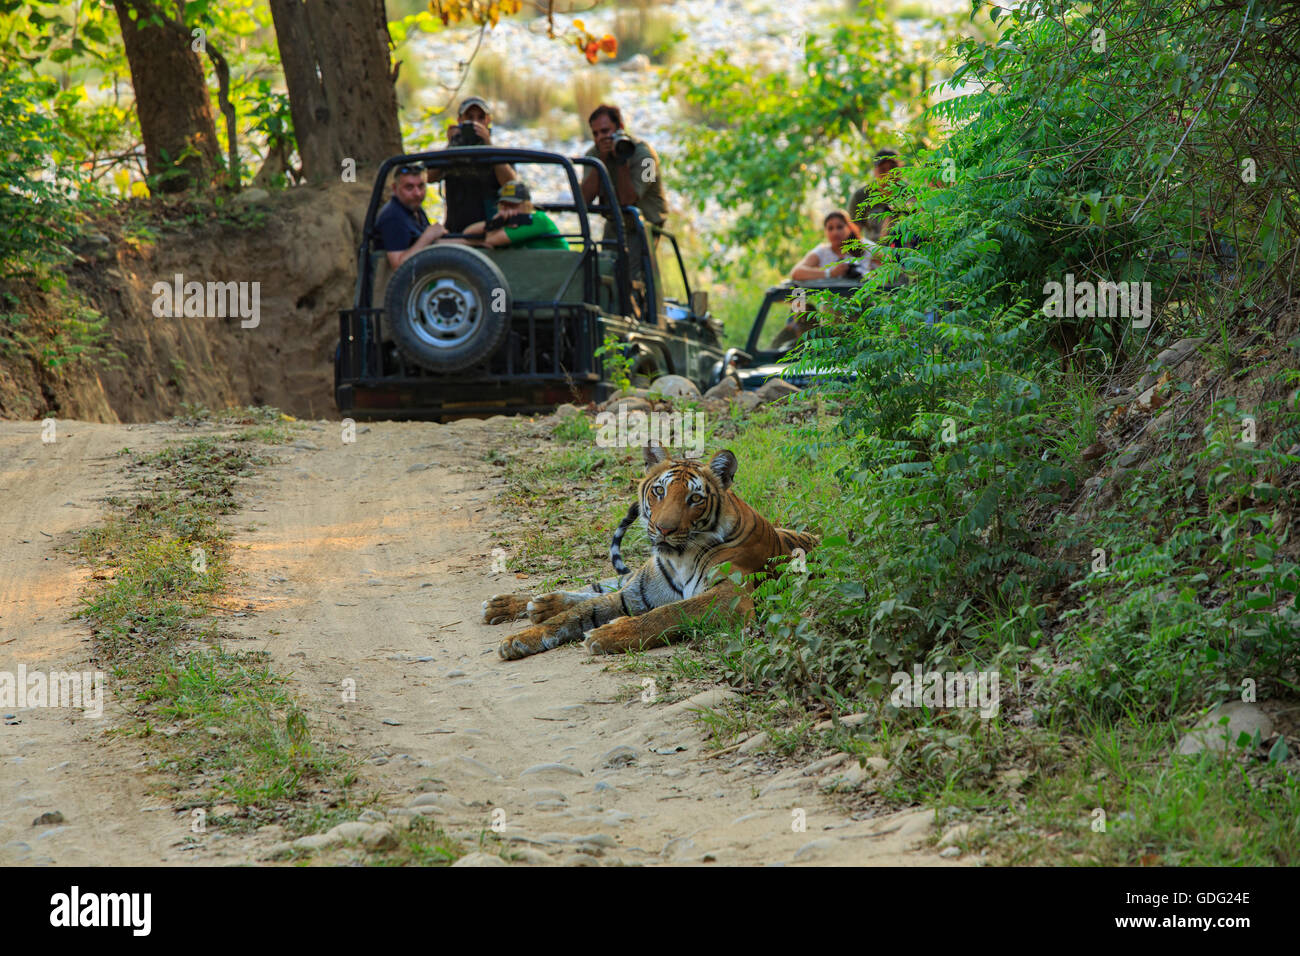 Bengal Tiger Sighting during safari (photographed at Corbett National Park - India) - Stock Image